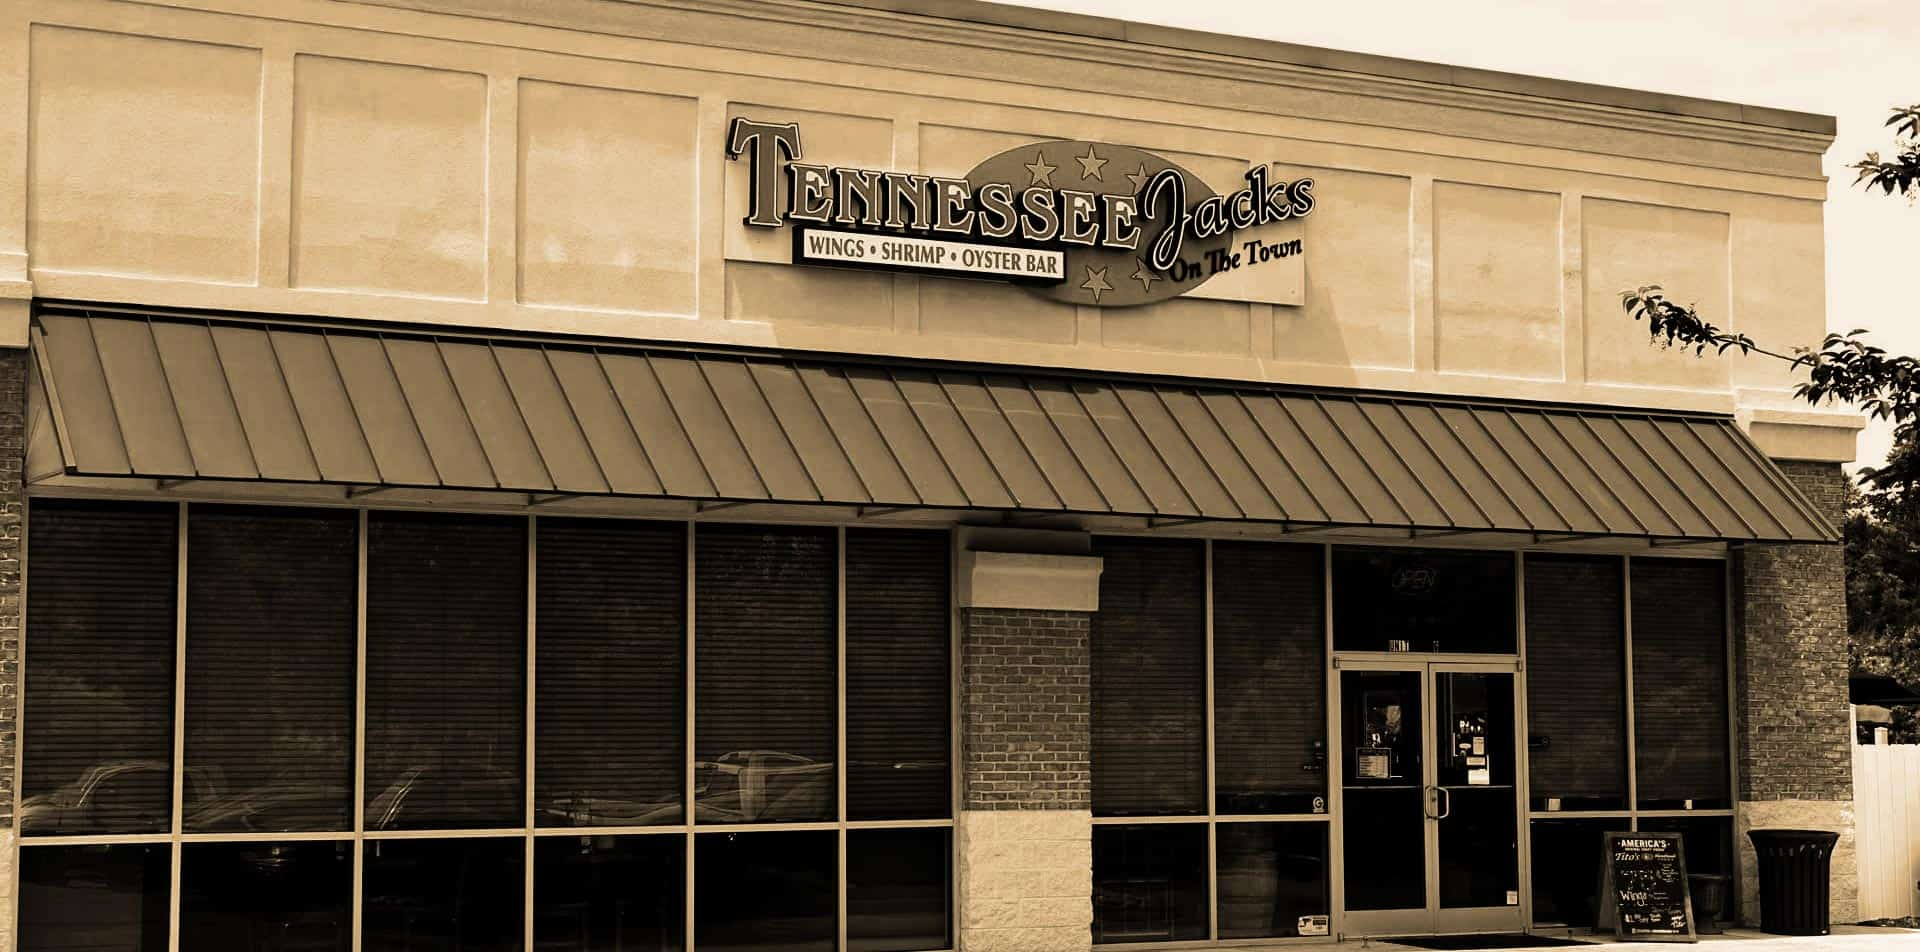 TN Jacks Restaurant